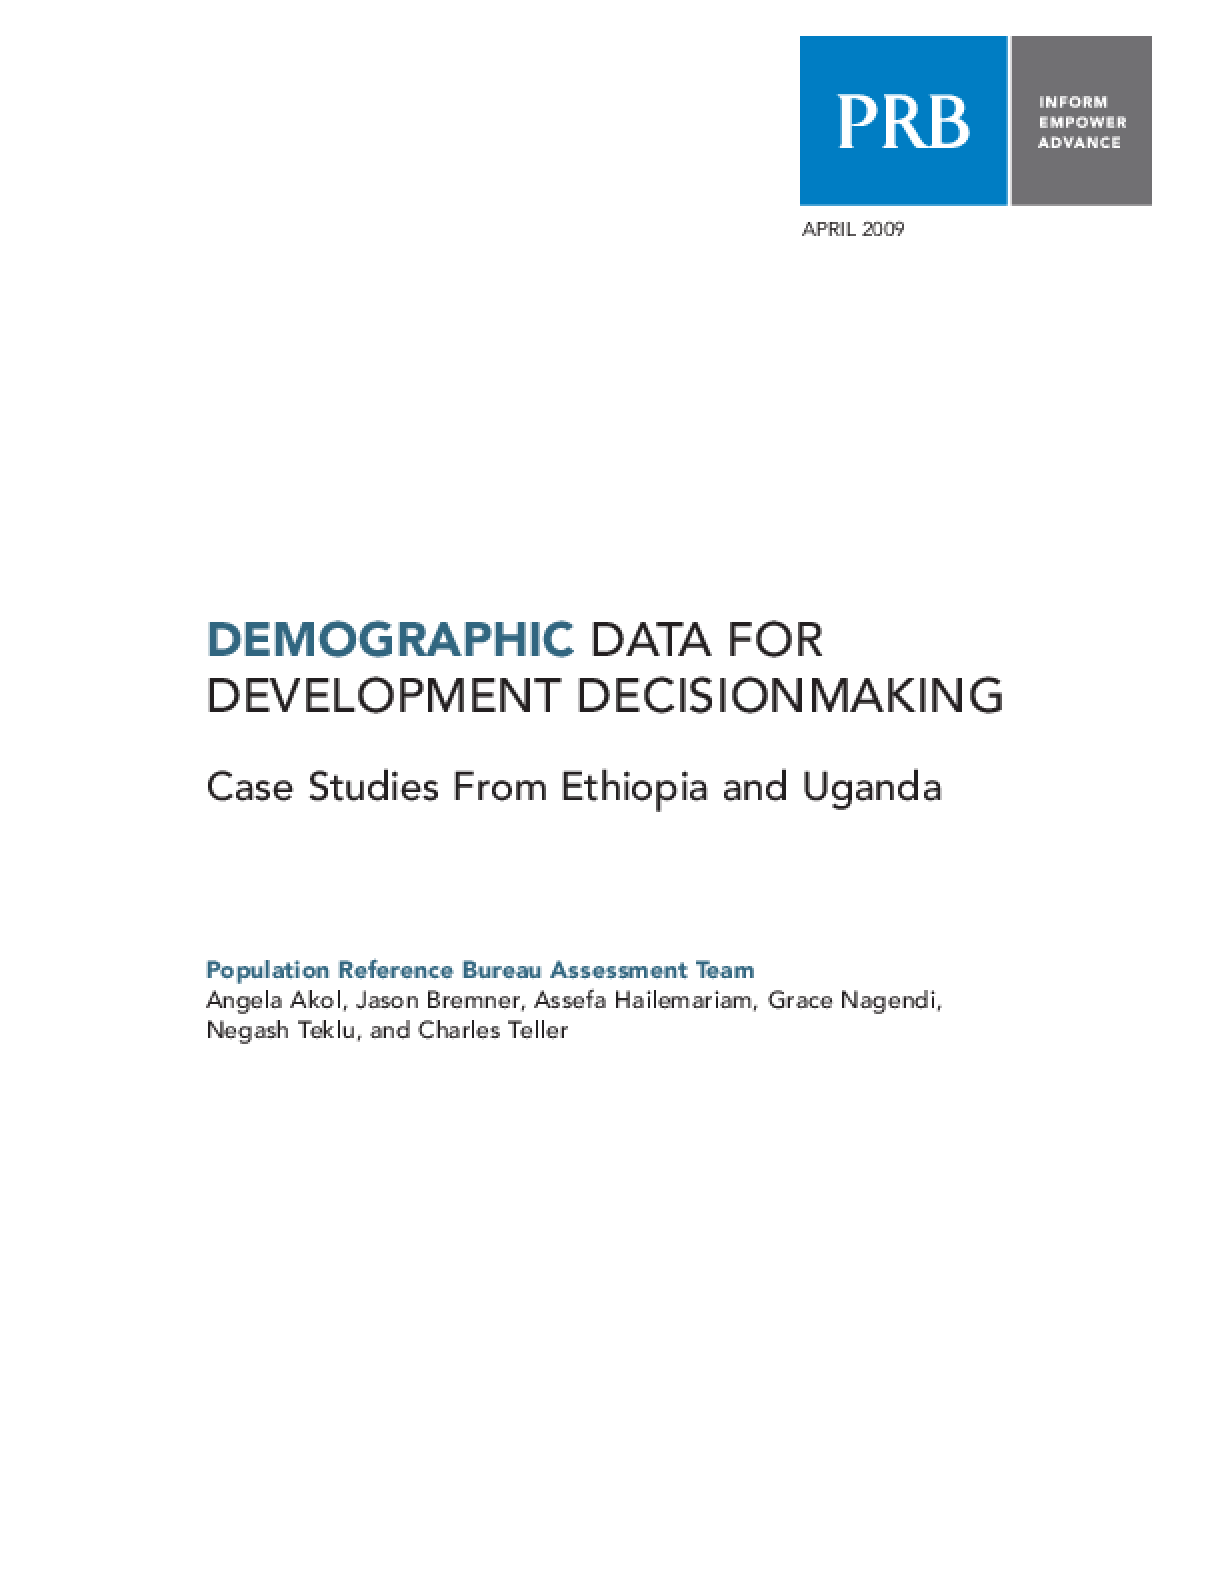 Demographic Data for Development Decisionmaking: Case Studies From Ethiopia and Uganda